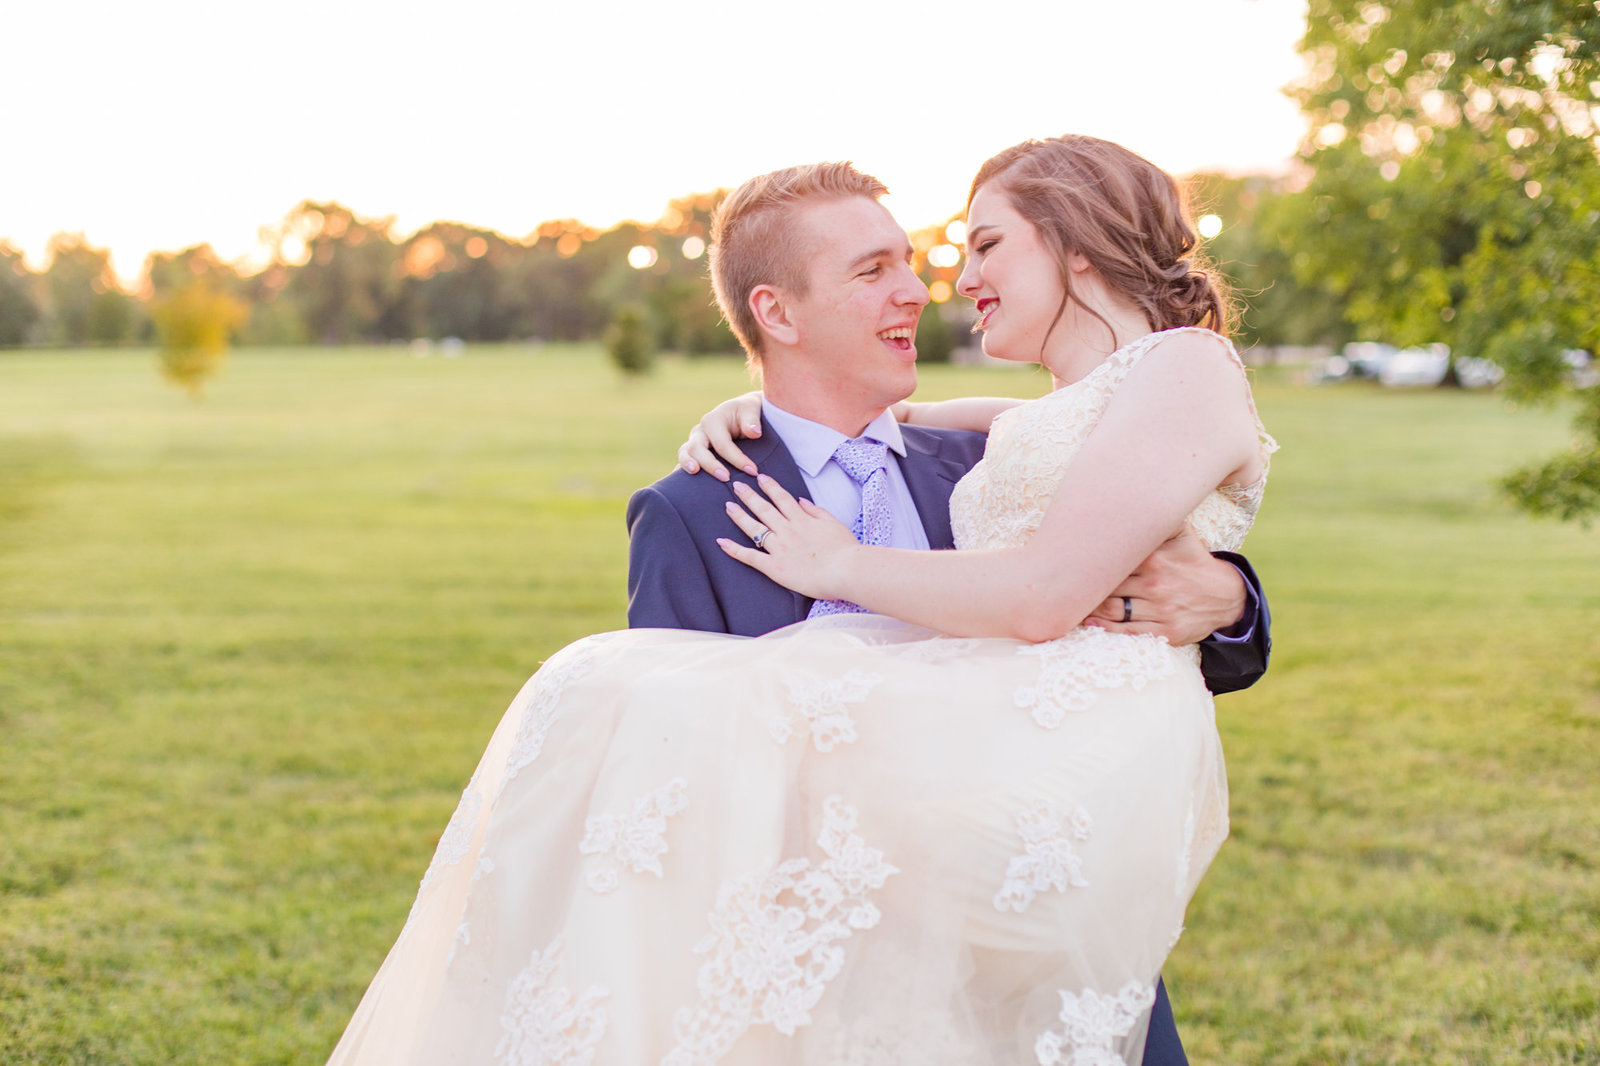 st-louis-wedding-photographer-belleville-alton-summer-spring-romantic-5